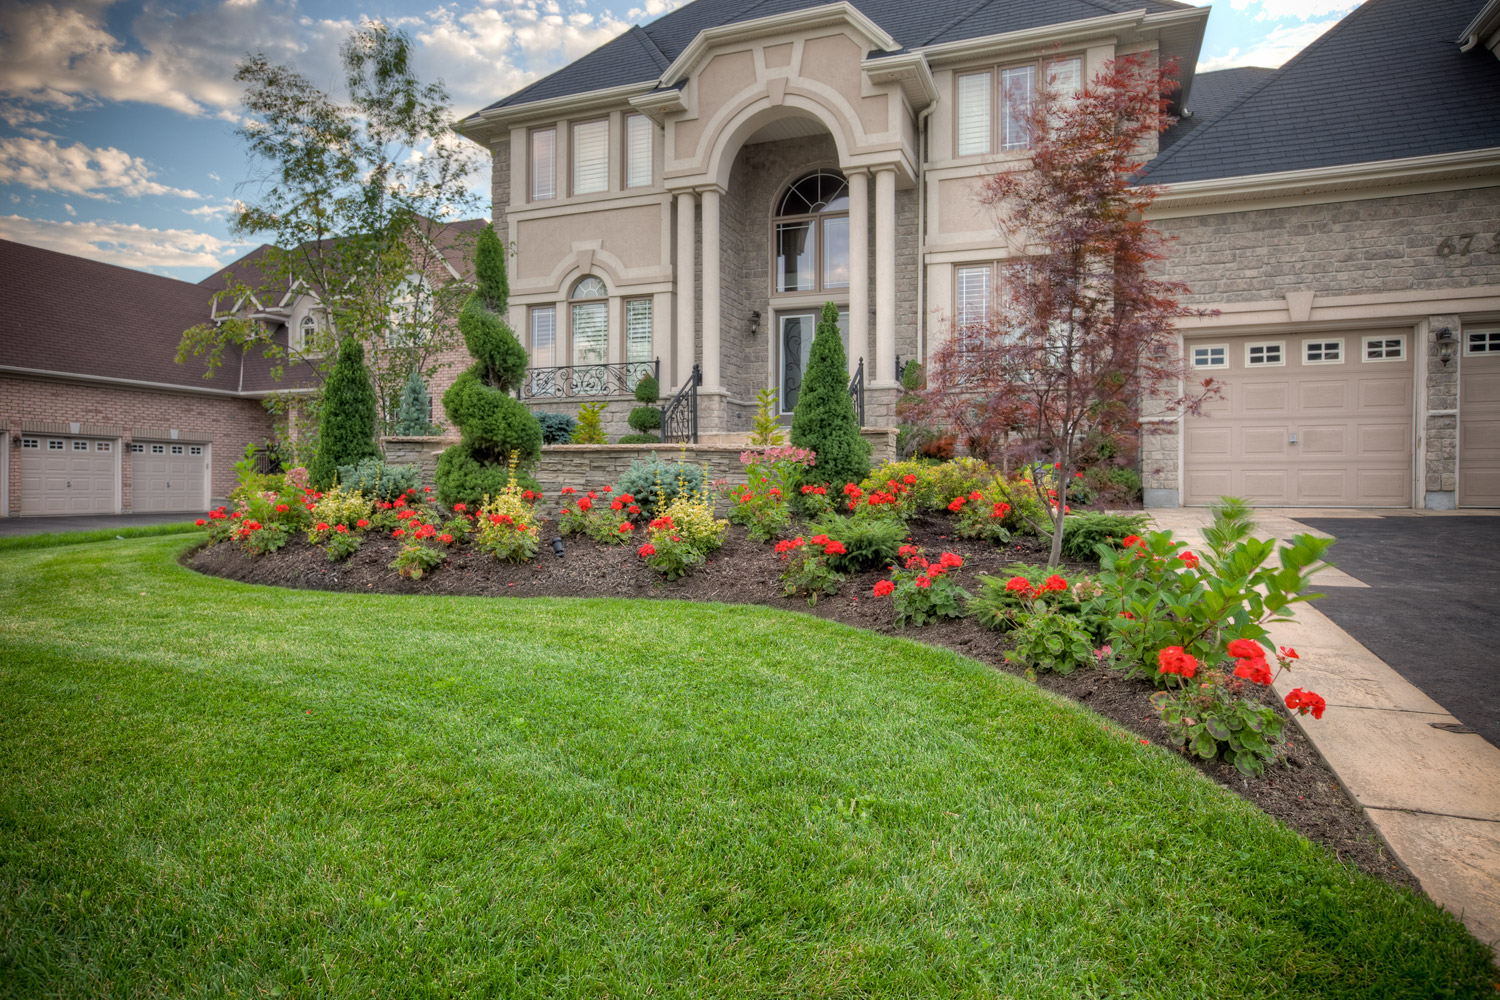 Some ideas of front yard landscaping for a small front for New landscaping ideas